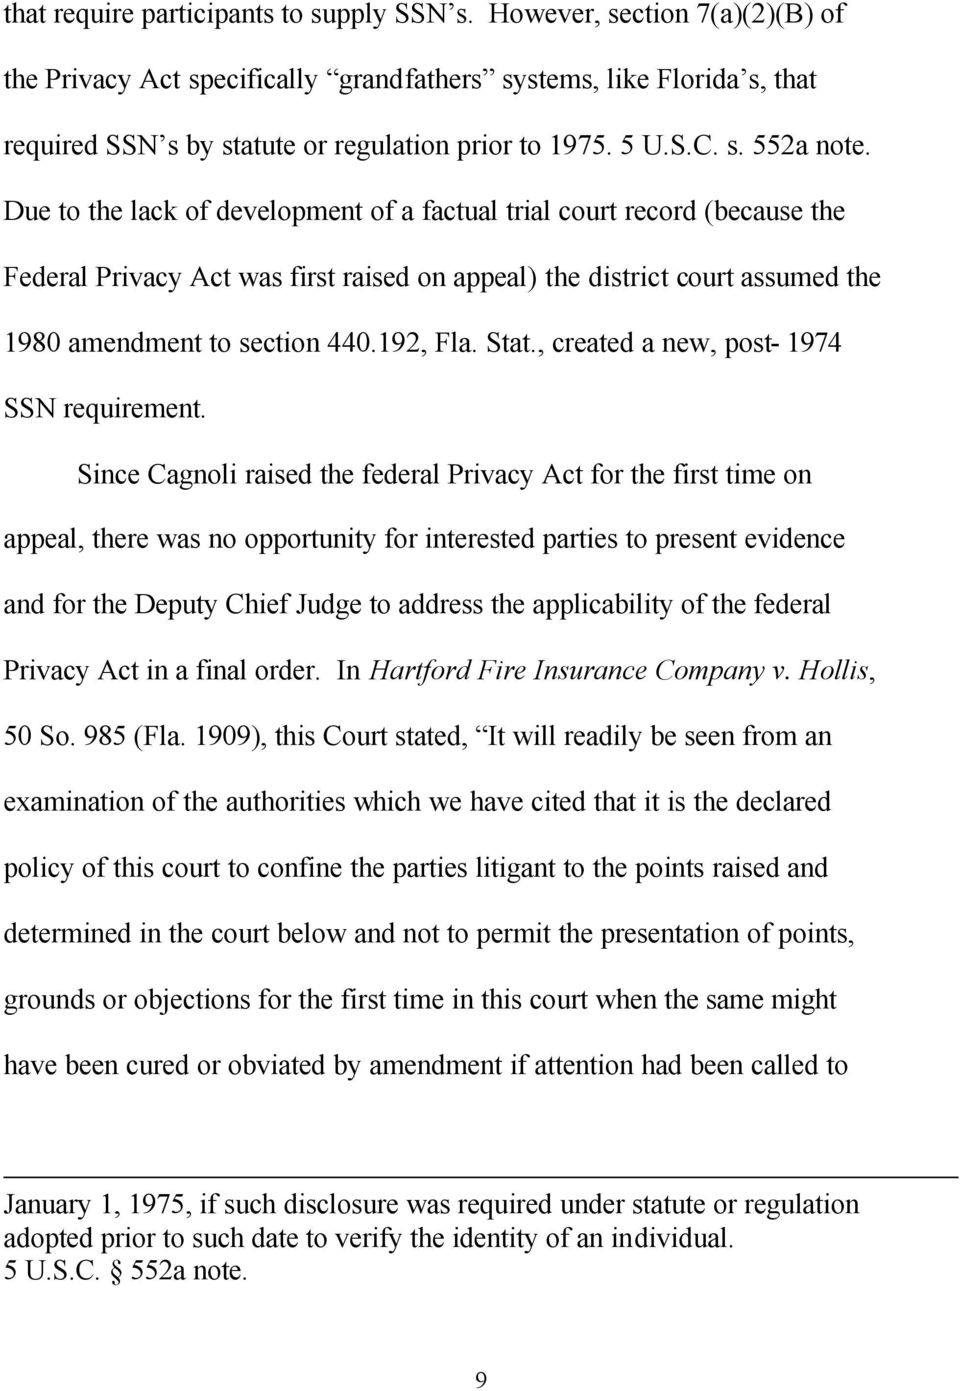 Due to the lack of development of a factual trial court record (because the Federal Privacy Act was first raised on appeal) the district court assumed the 1980 amendment to section 440.192, Fla. Stat.